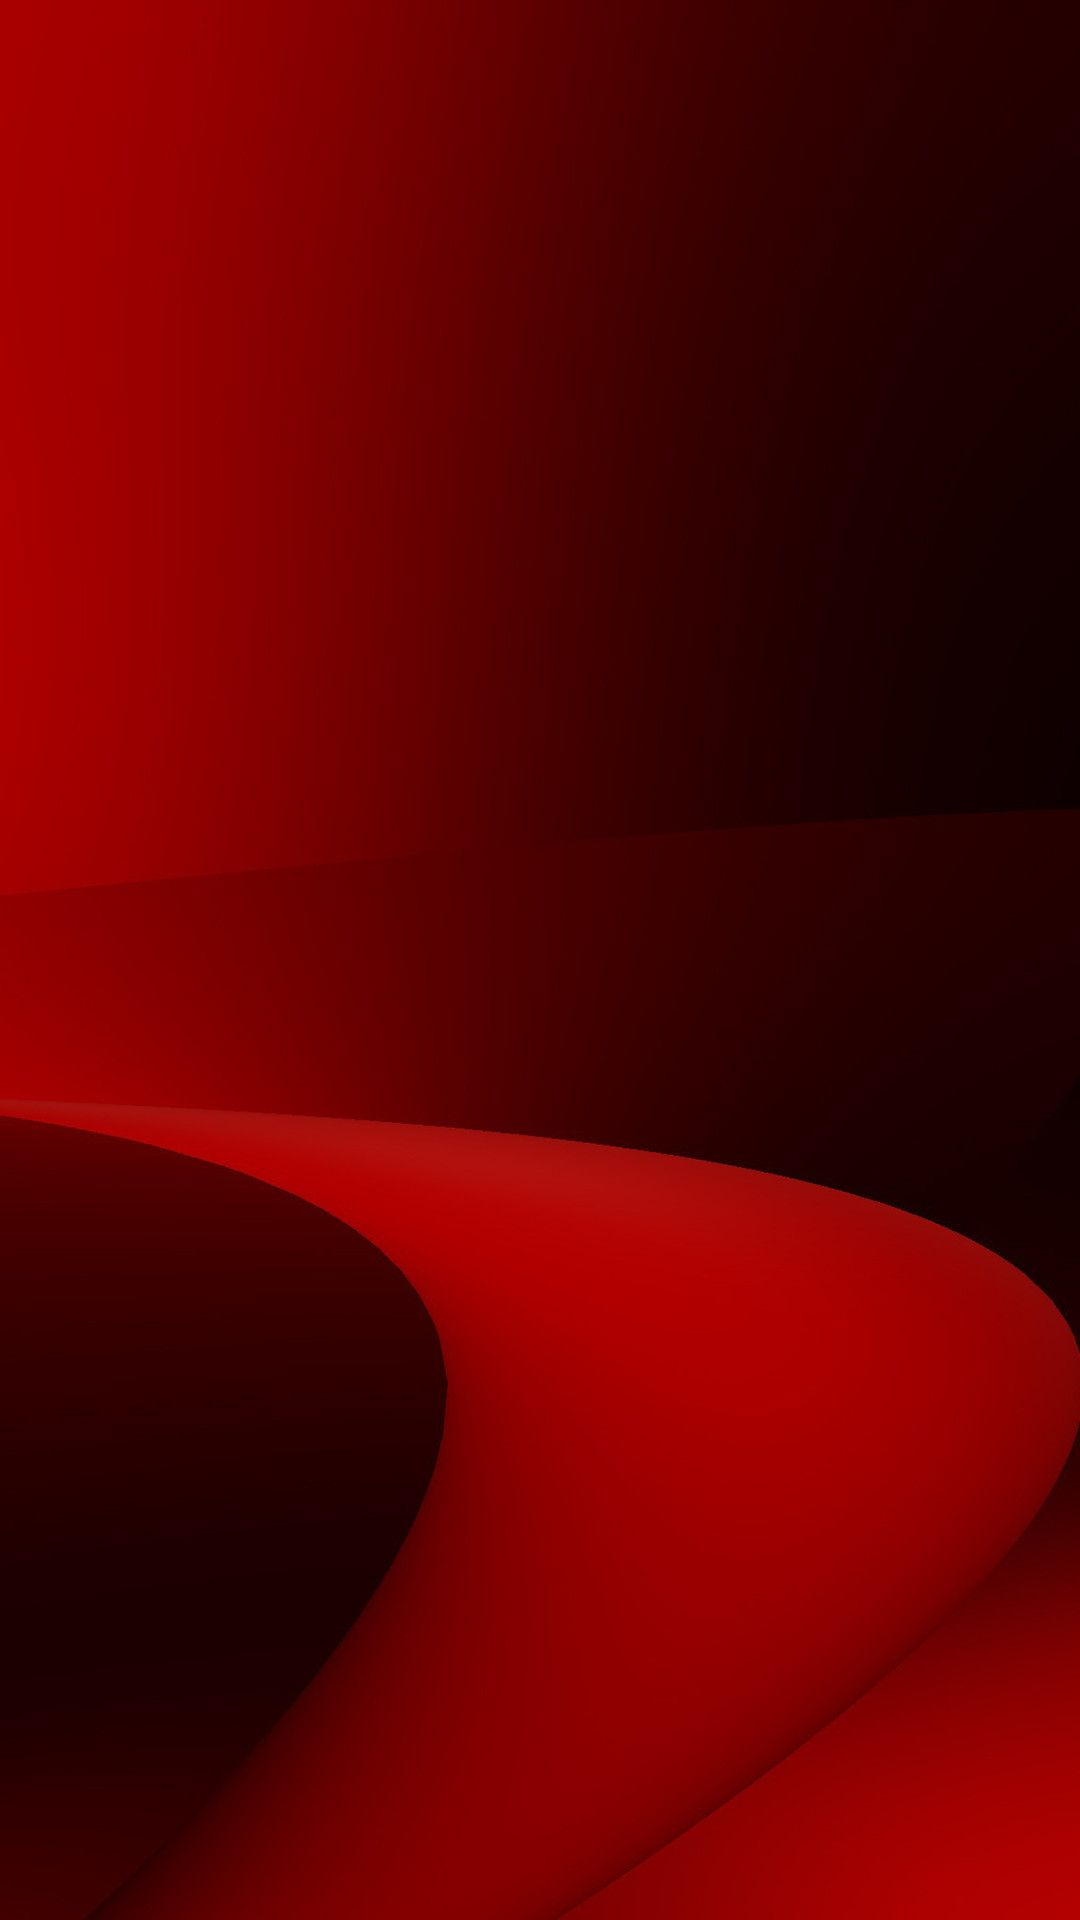 Red Gaming Background Picture Dark Wallpaper Iphone Iphone Wallpaper Logo Red And Black Wallpaper